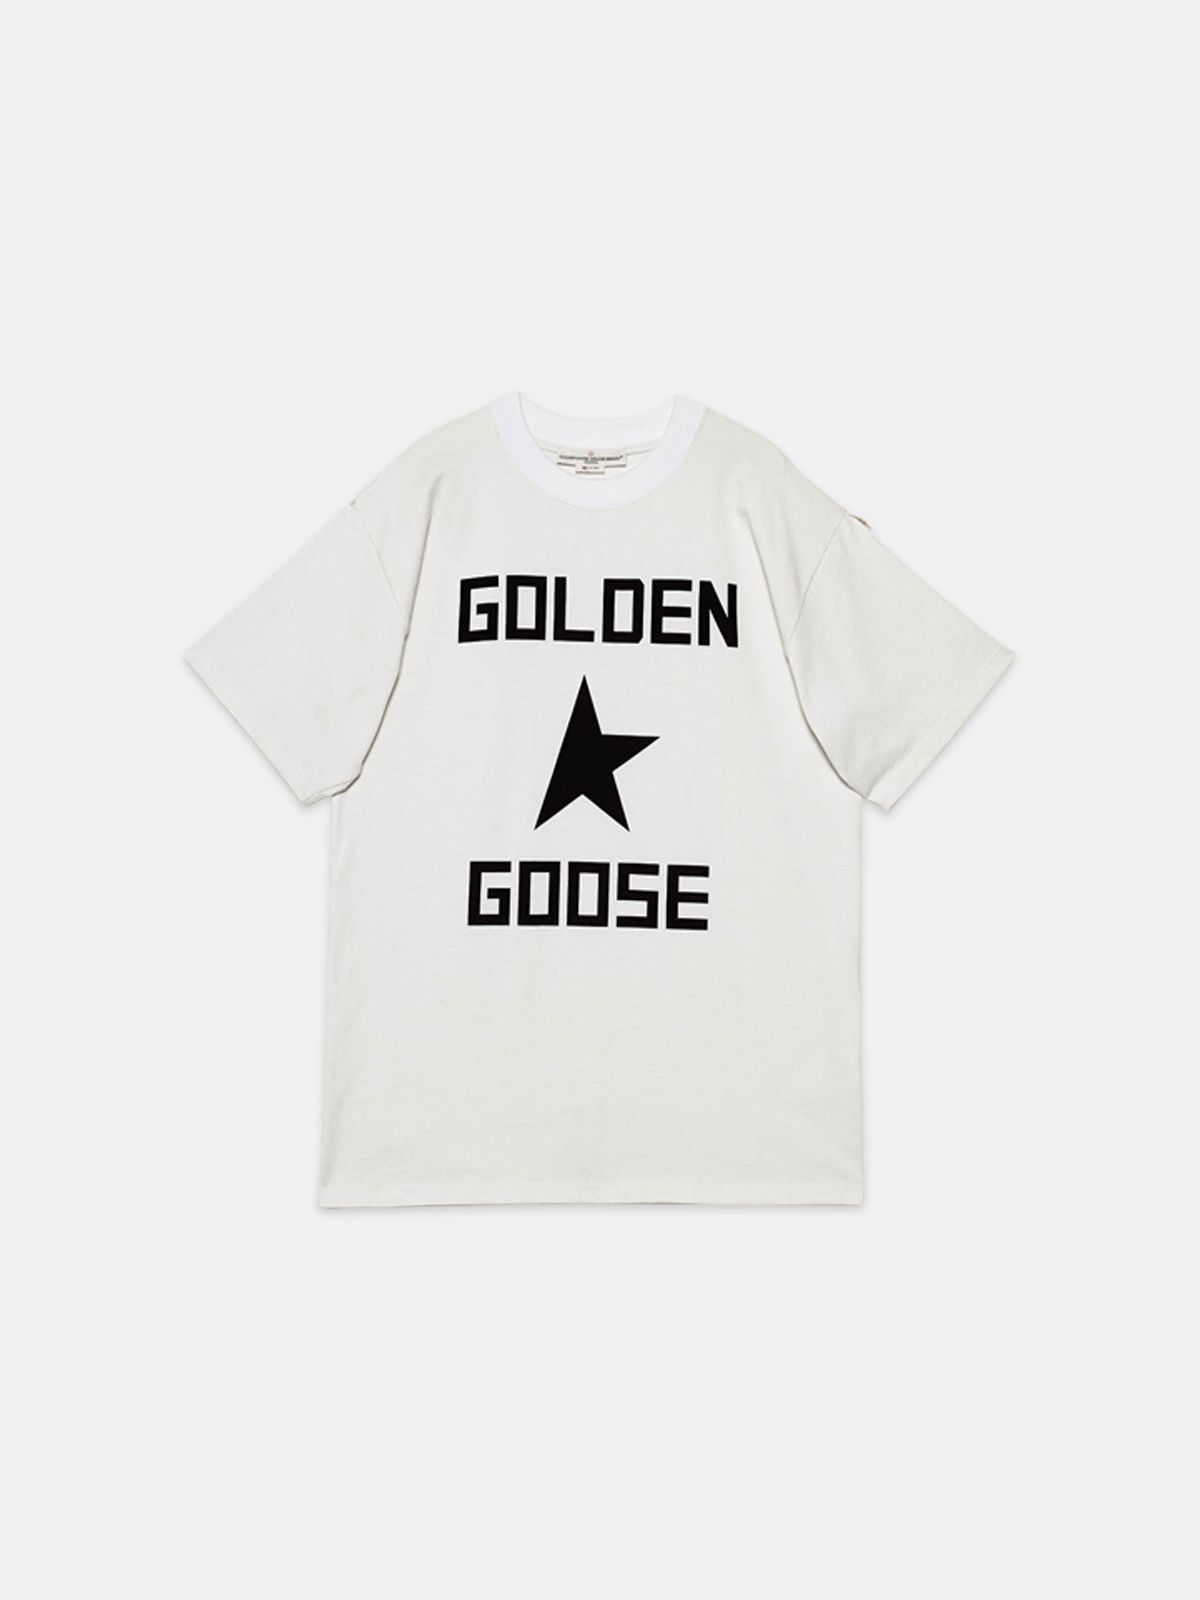 Golden Goose - T-shirt Ryo in puro cotone con stampa logo in